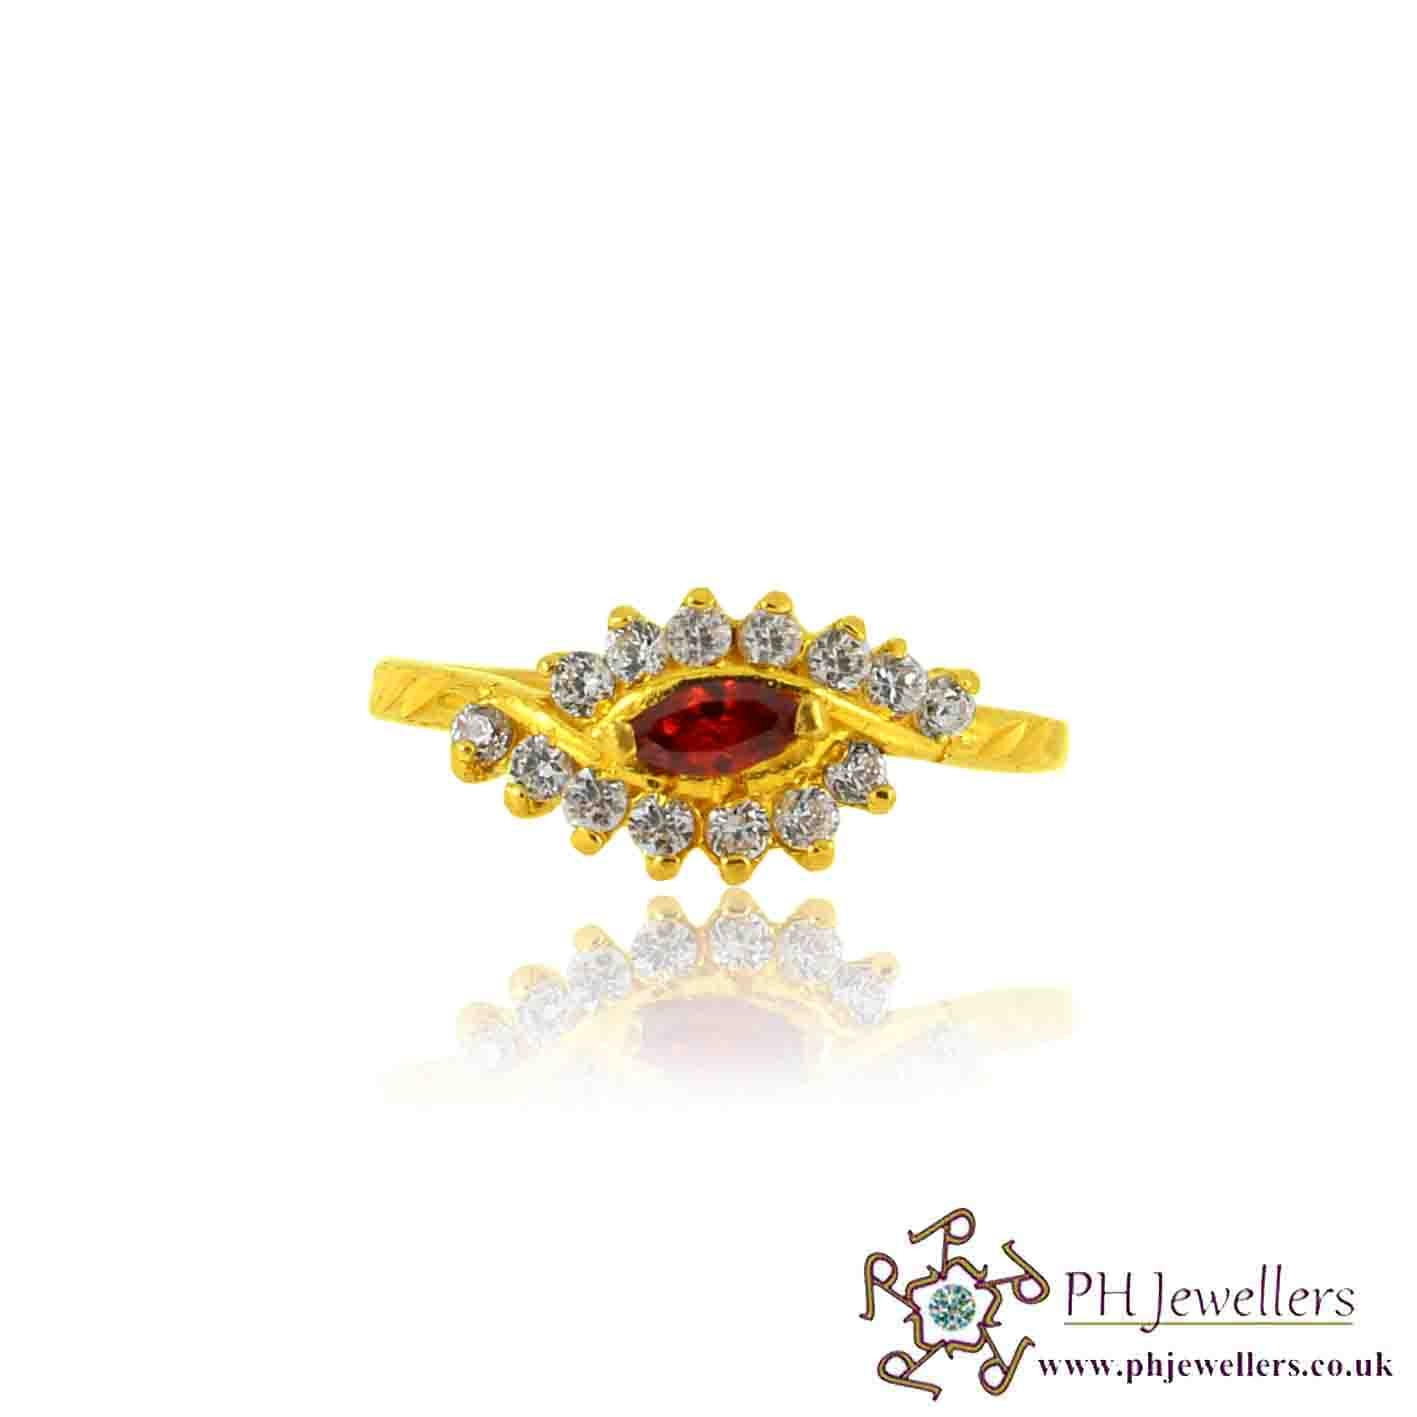 22ct 916 Yellow Gold Hallmark Garnet Ring CZ Size L 1/2 SR124